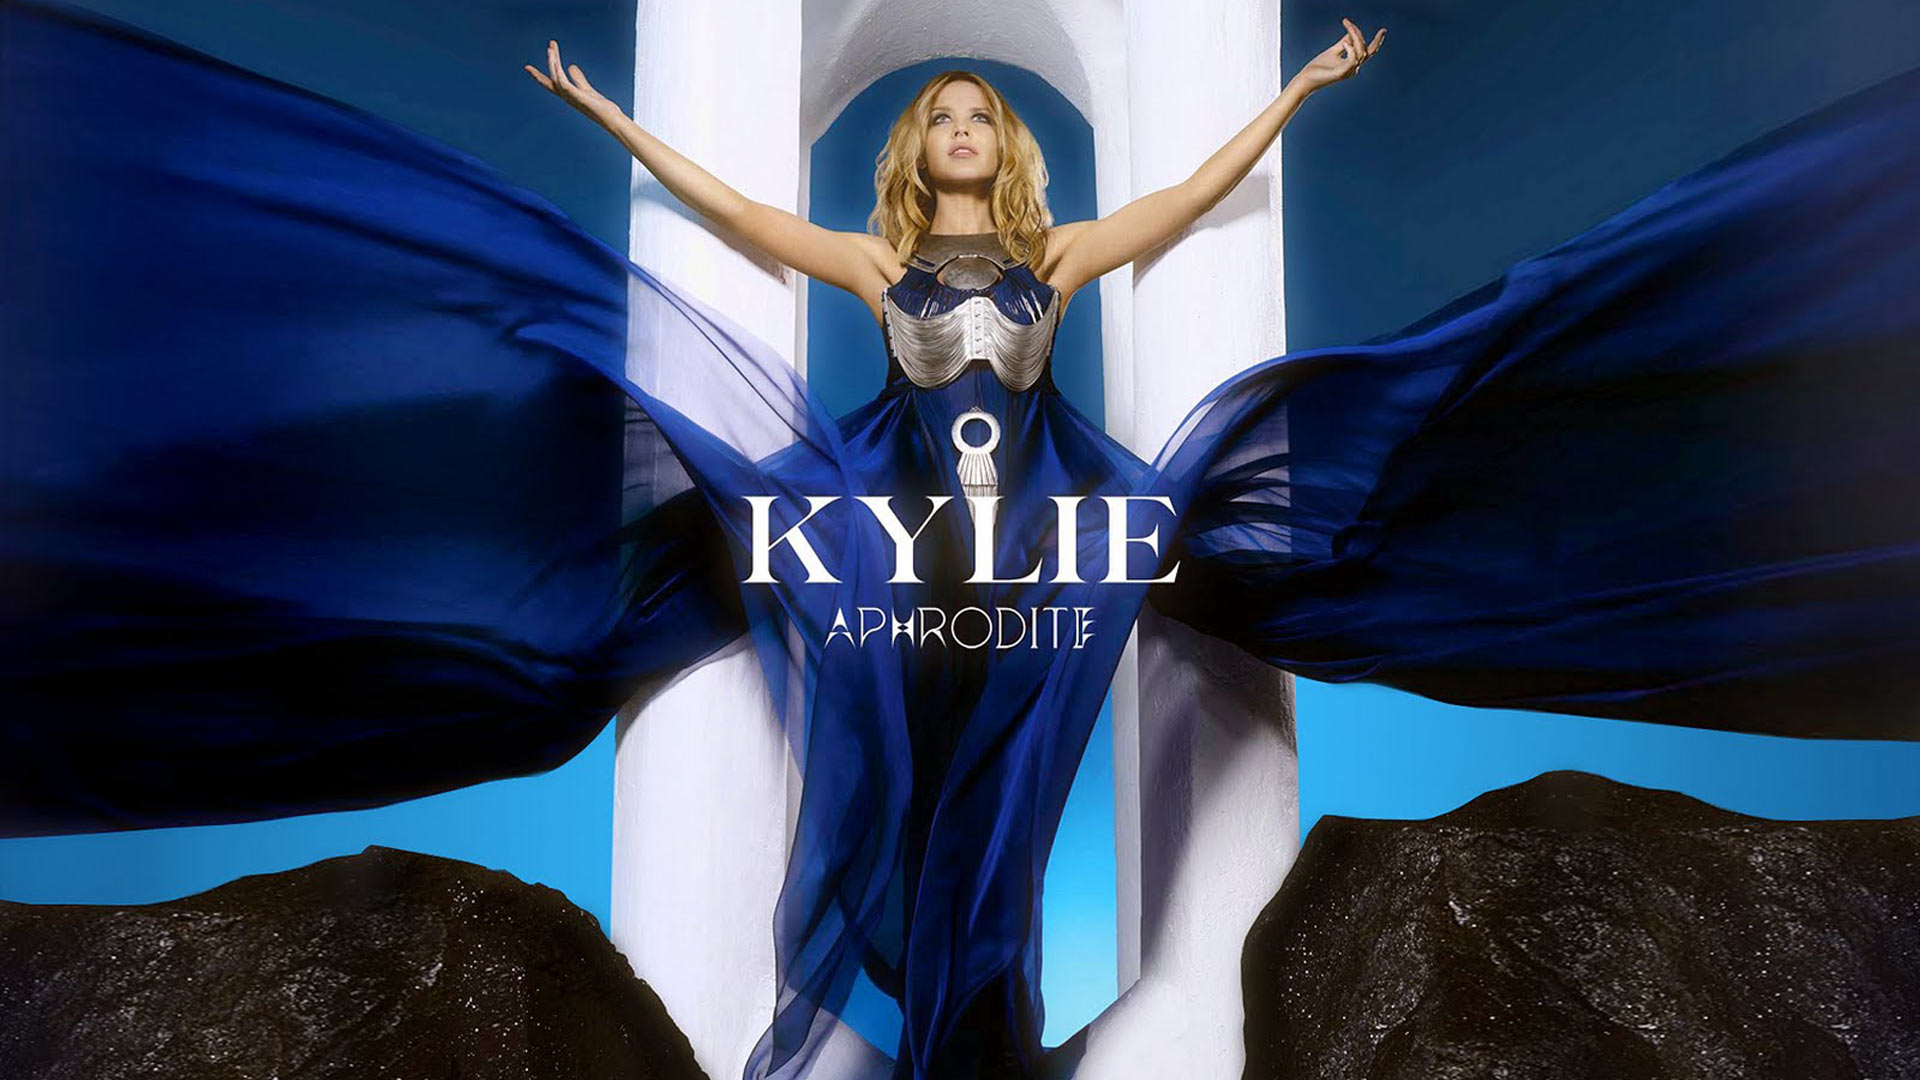 Kylie Minogue Aphrodite Wallpaper 3 1920x1080